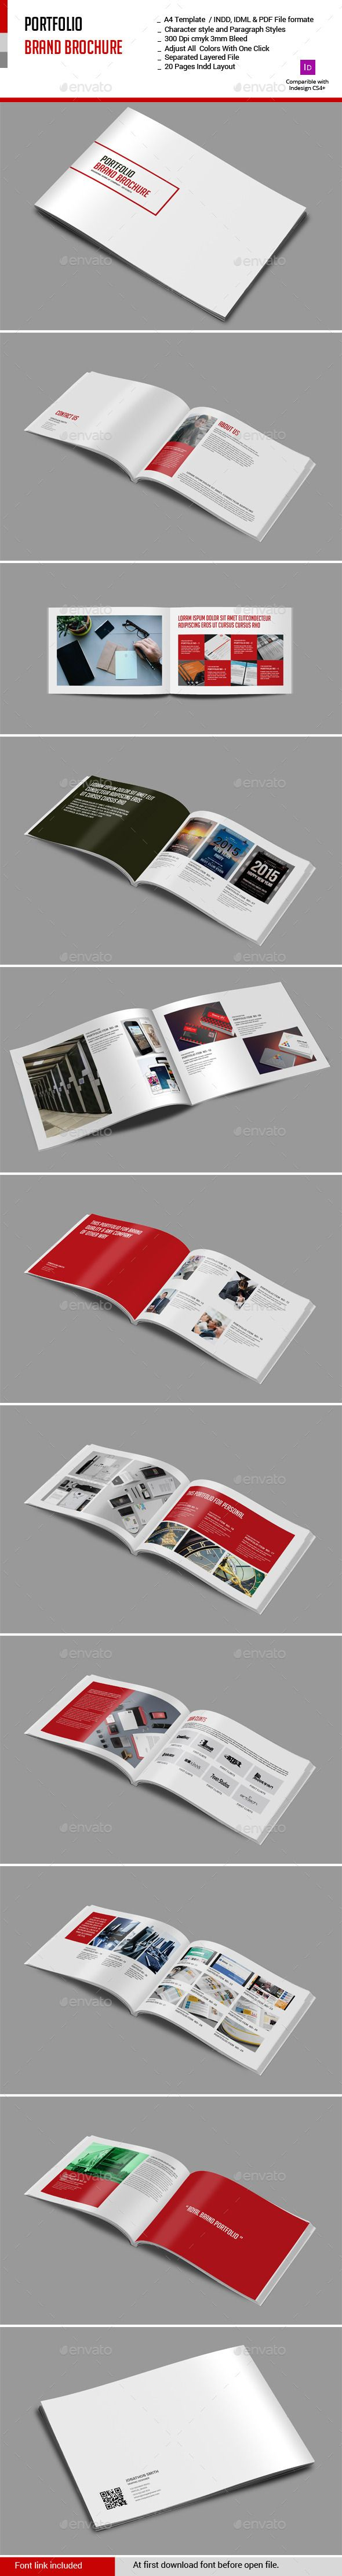 Portfolio Brand Brochure Template. Download: http://graphicriver.net/item/portfolio-brand-brochure/10974788?ref=ksioks